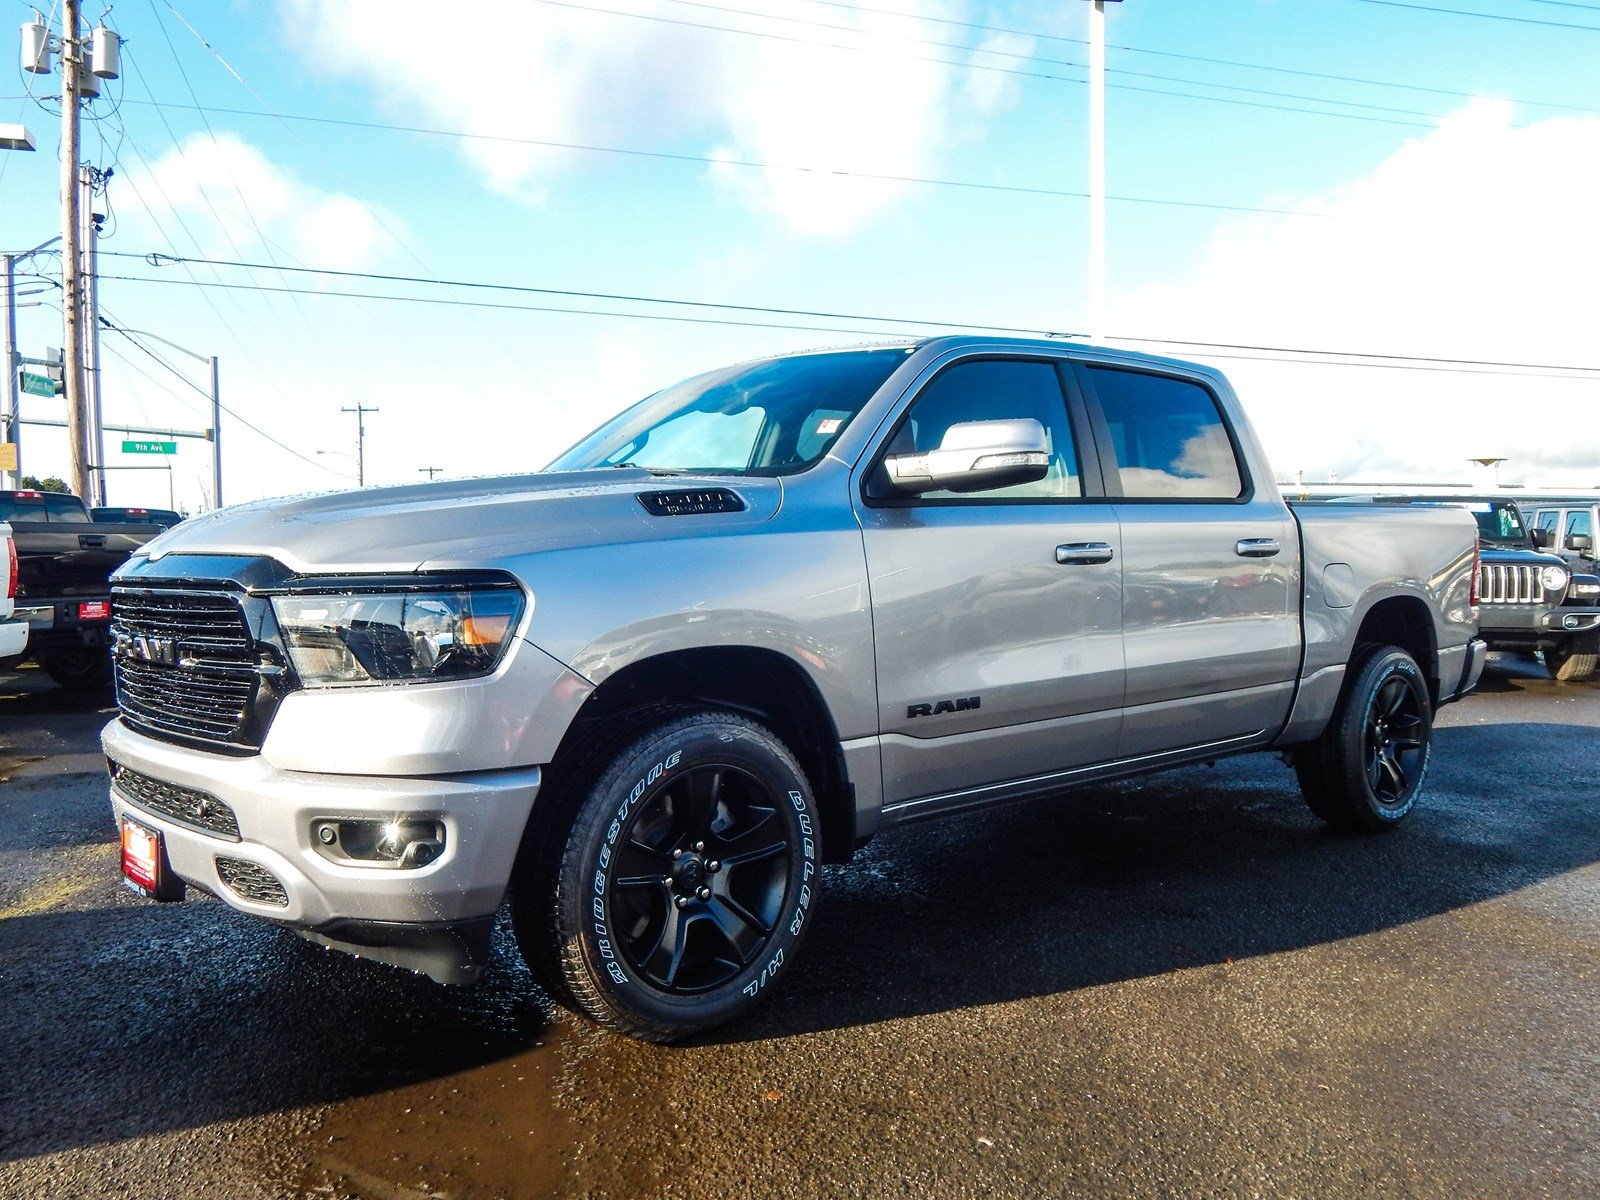 2020 Ram 1500 Crew Cab 4x4, Pickup #R2005 - photo 1